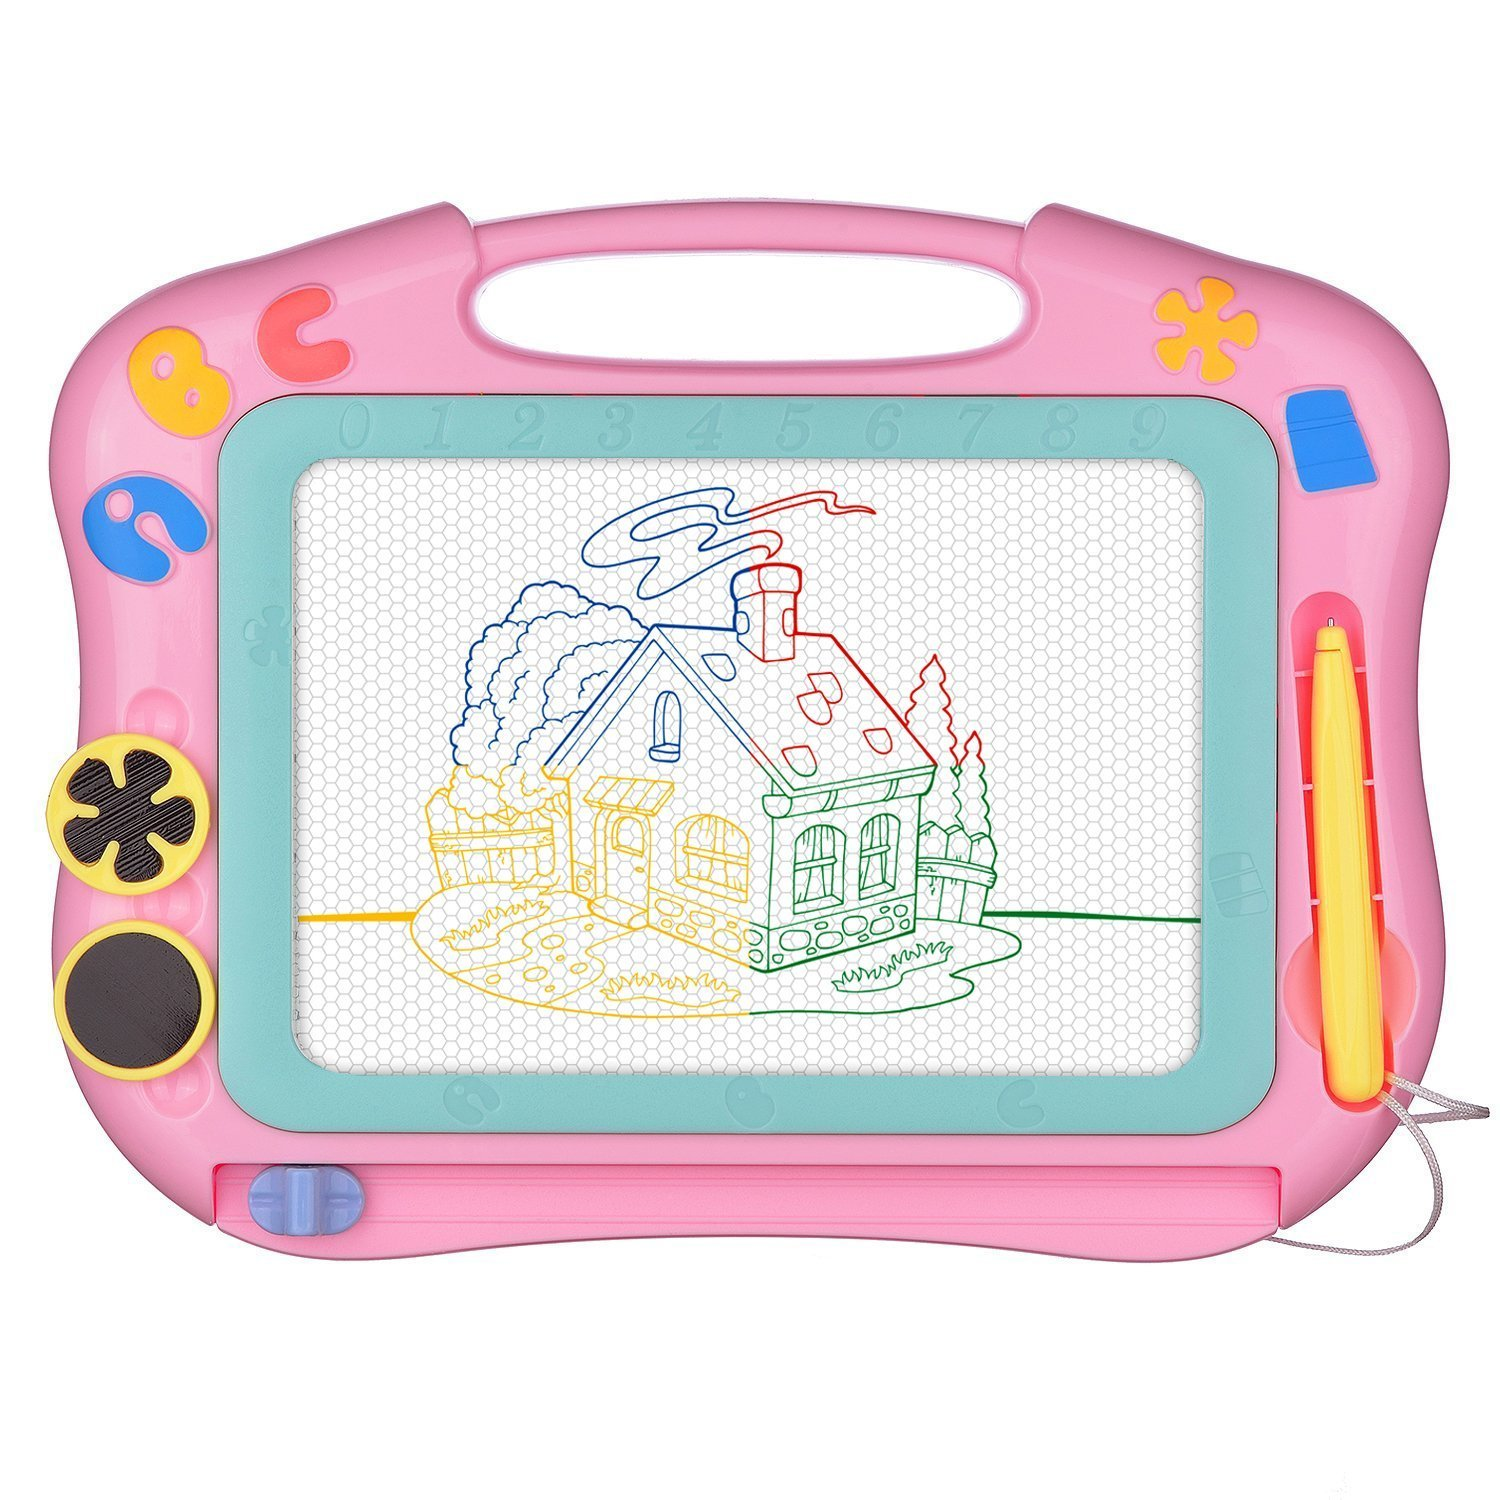 LOFEE Magna Doodle Etch a Sketch Present for 1 2 3 4 Year Old Girl,Magnetic Drawing Board Gift for 2 3 4 Year Old Girl Toy Age 1 2 3 Birthday Gift for 2 3 4 Year Old Girls Small Toys for Travel